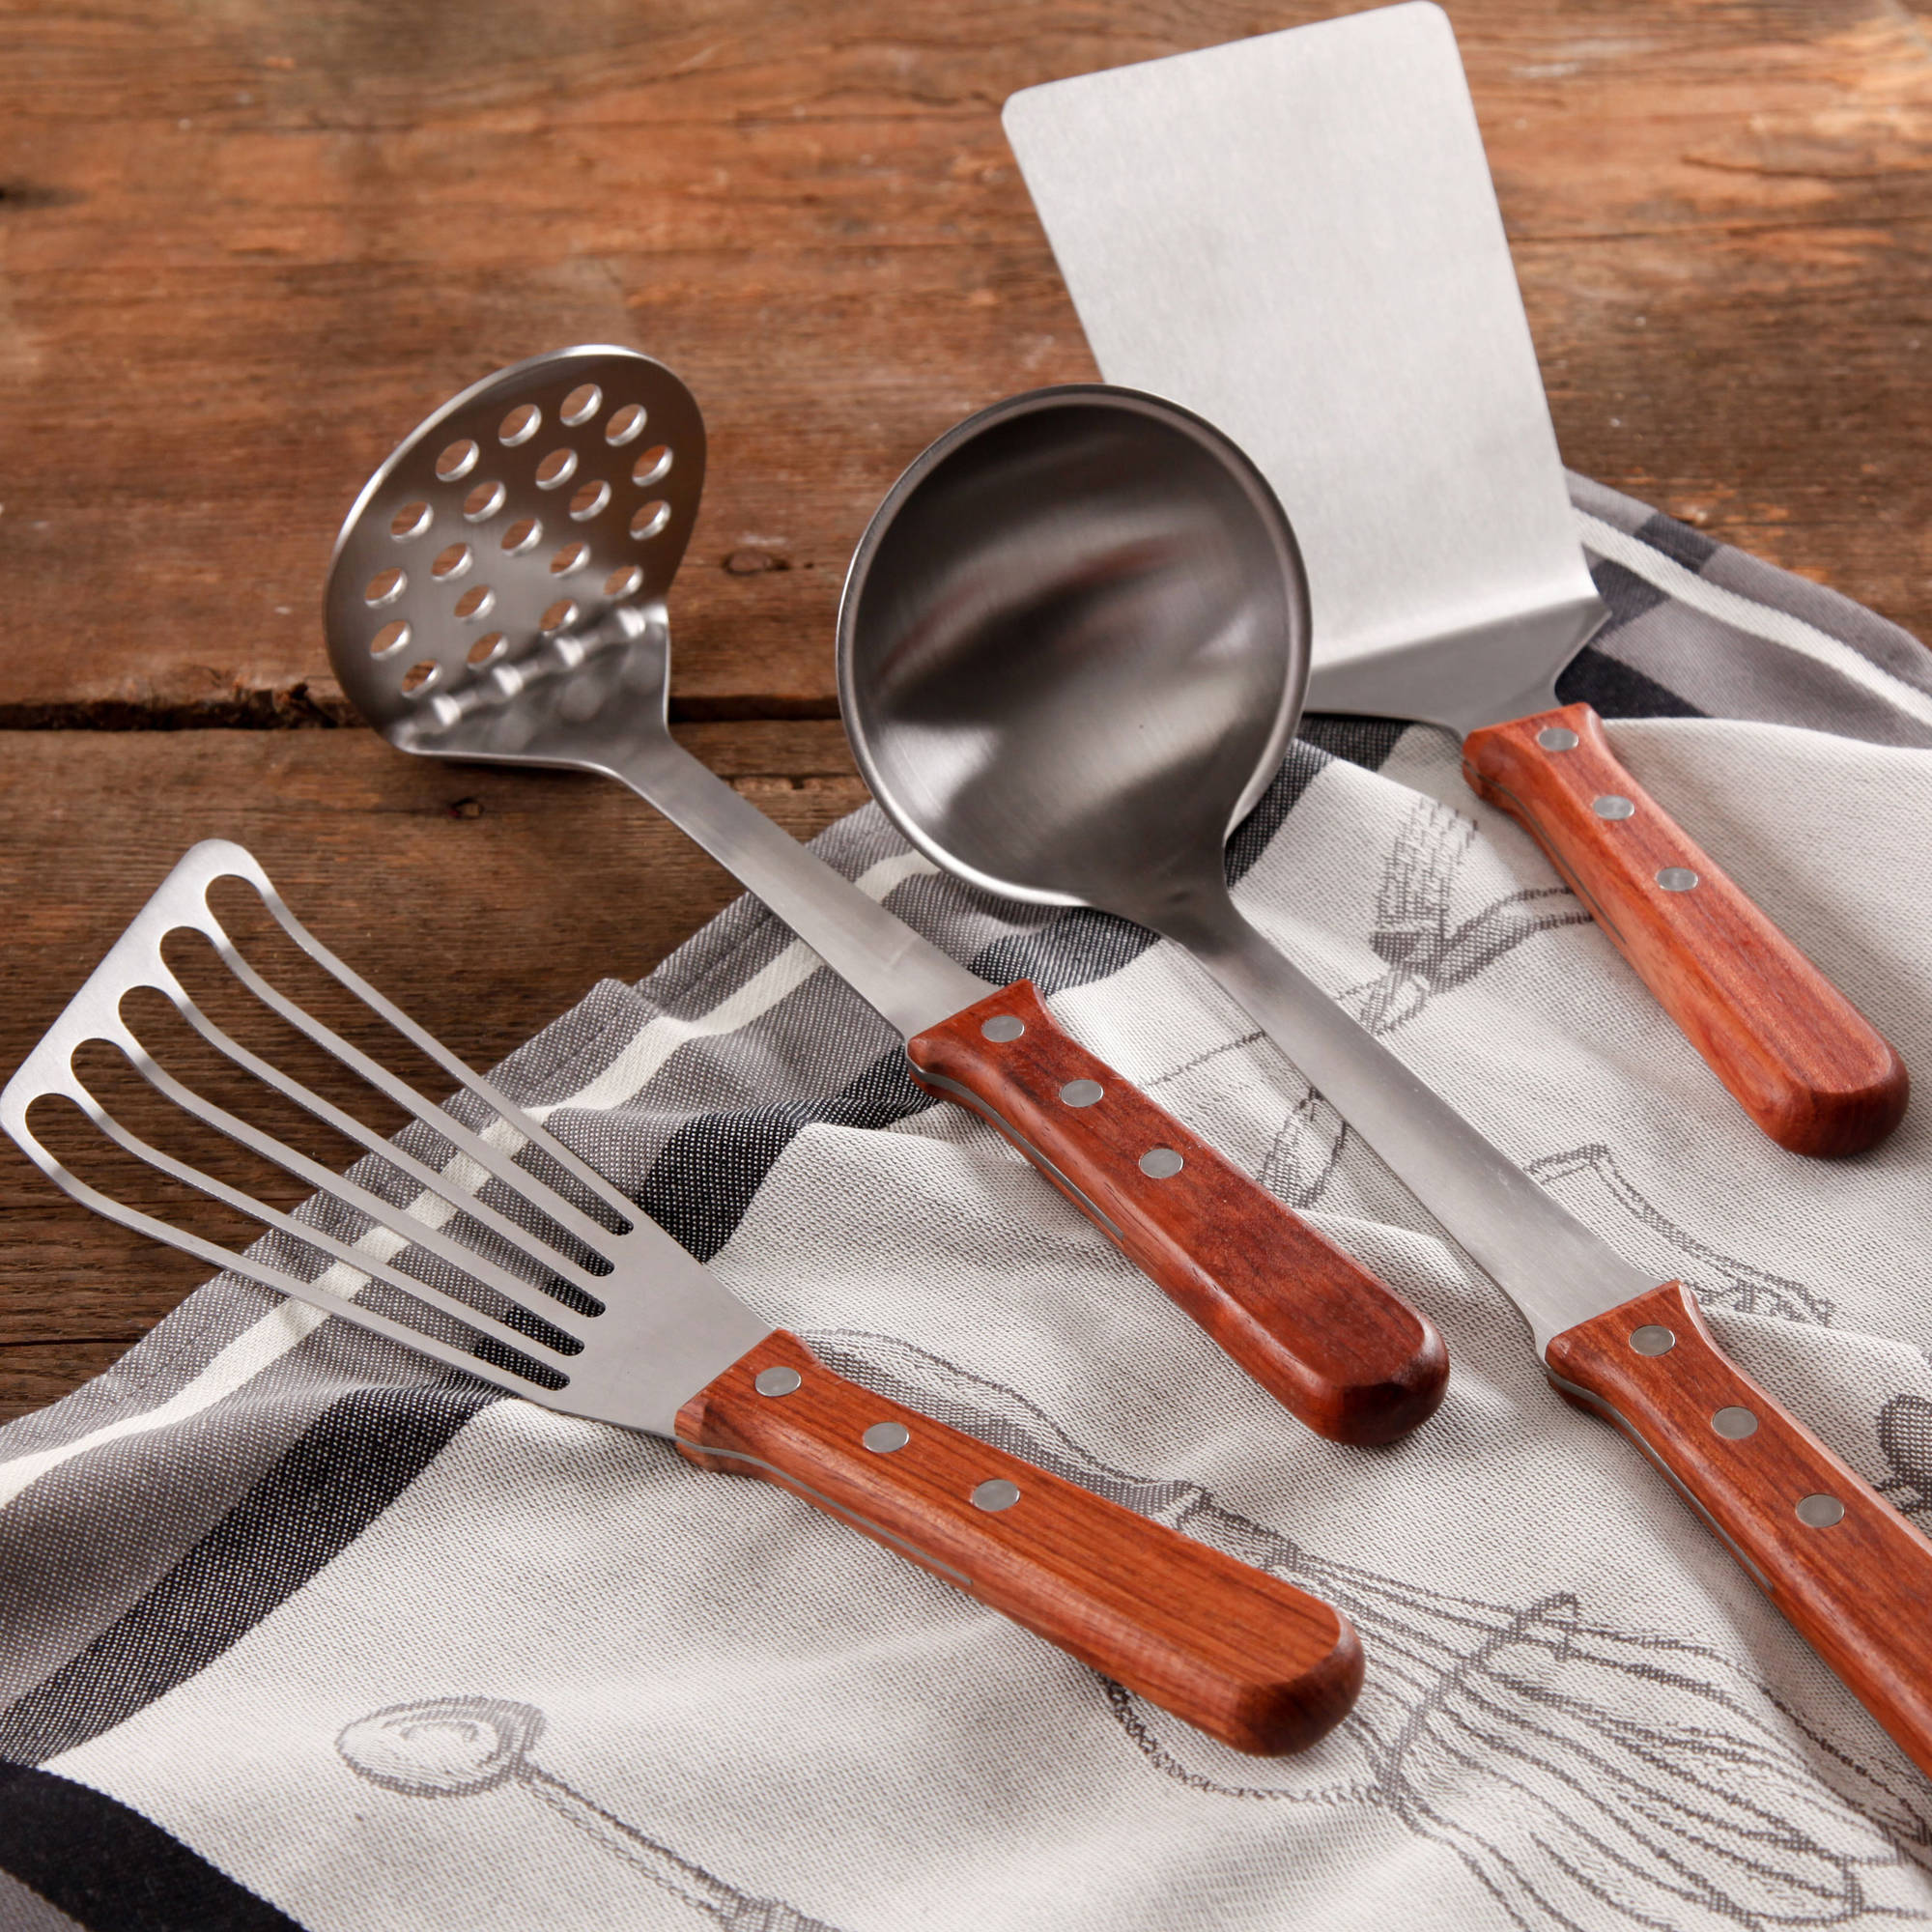 The Pioneer Woman Cowboy Rustic 4-Piece Kitchen Tool Set with Rosewood Handle